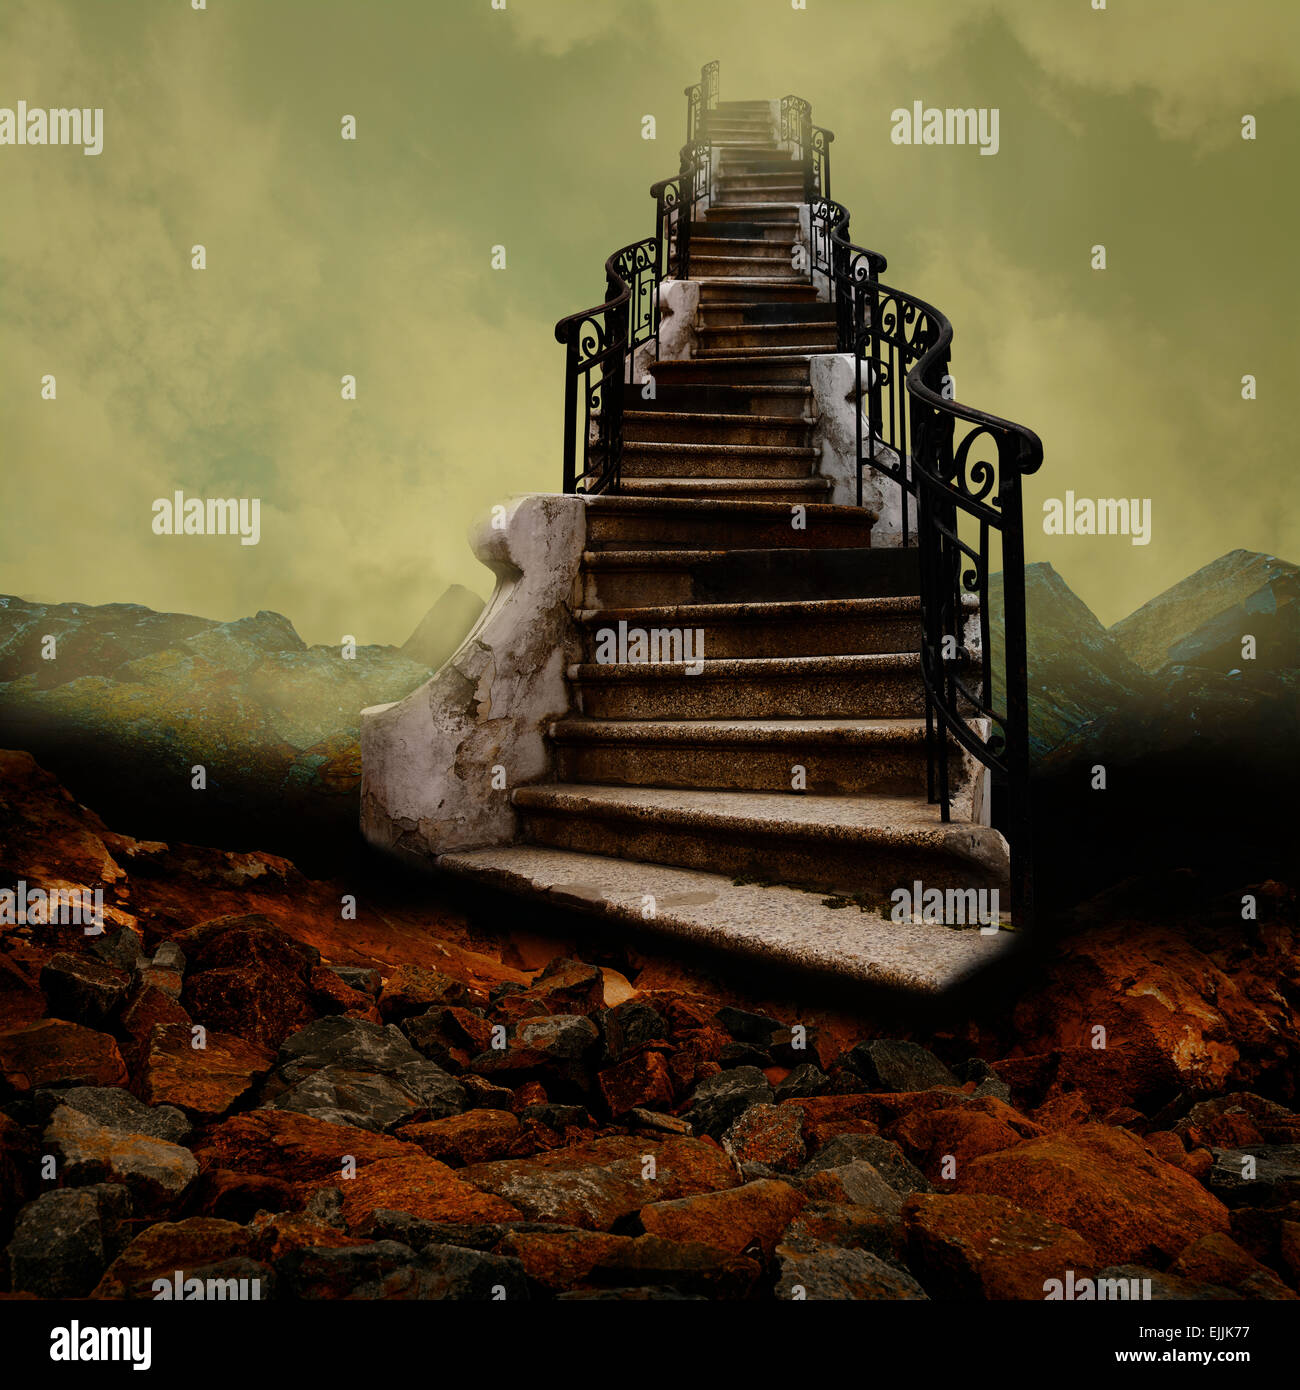 Surreal stairway towards the sky, like an old painting. - Stock Image